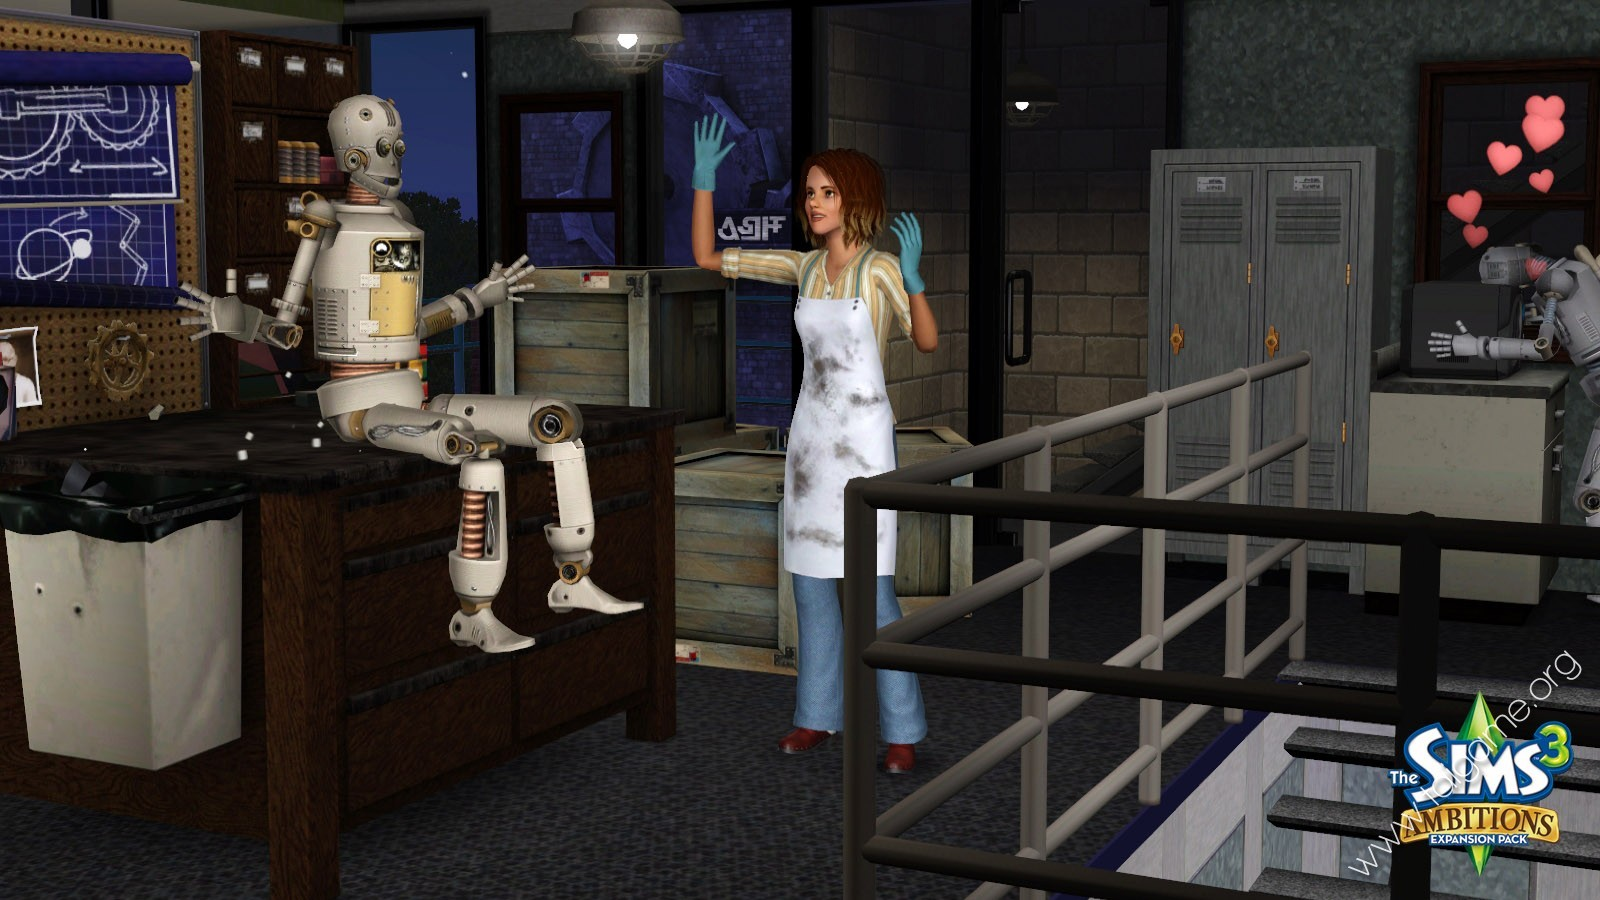 The Sims 3: Ambitions - Download Free Full Games   Simulation games